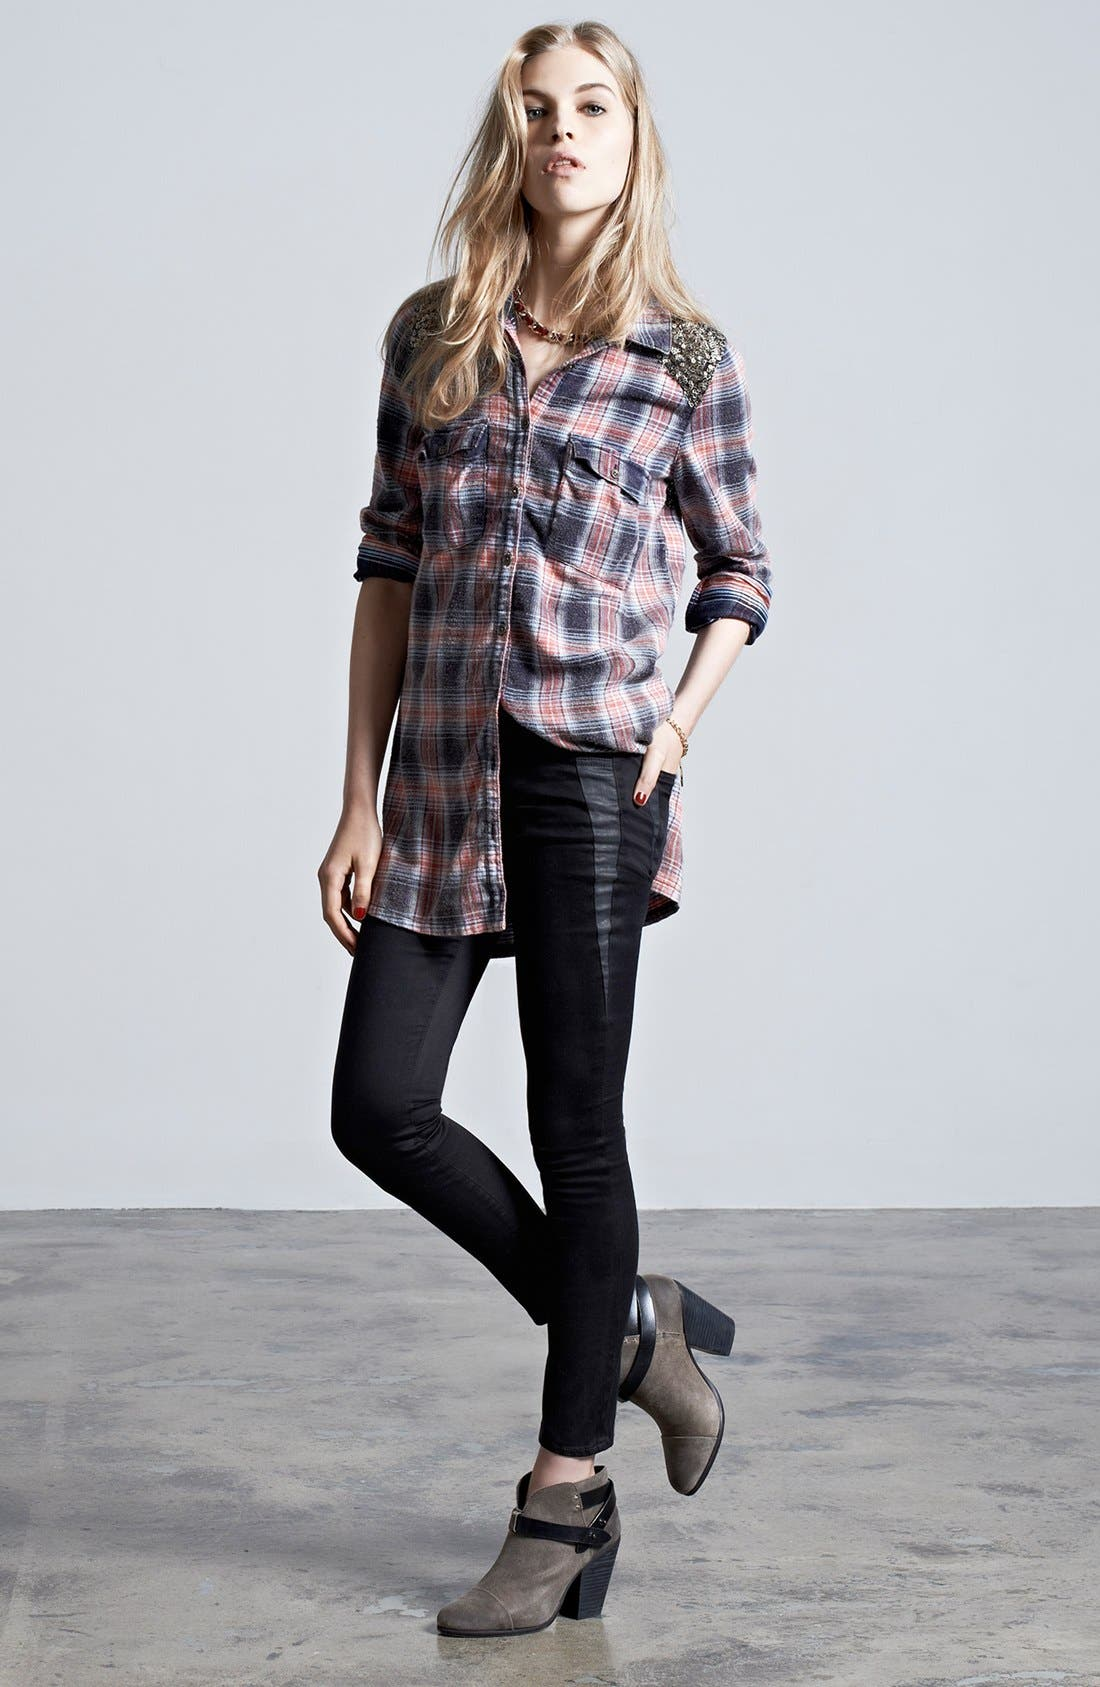 Main Image - Free People Tunic Shirt & Joe's Ankle Jeans